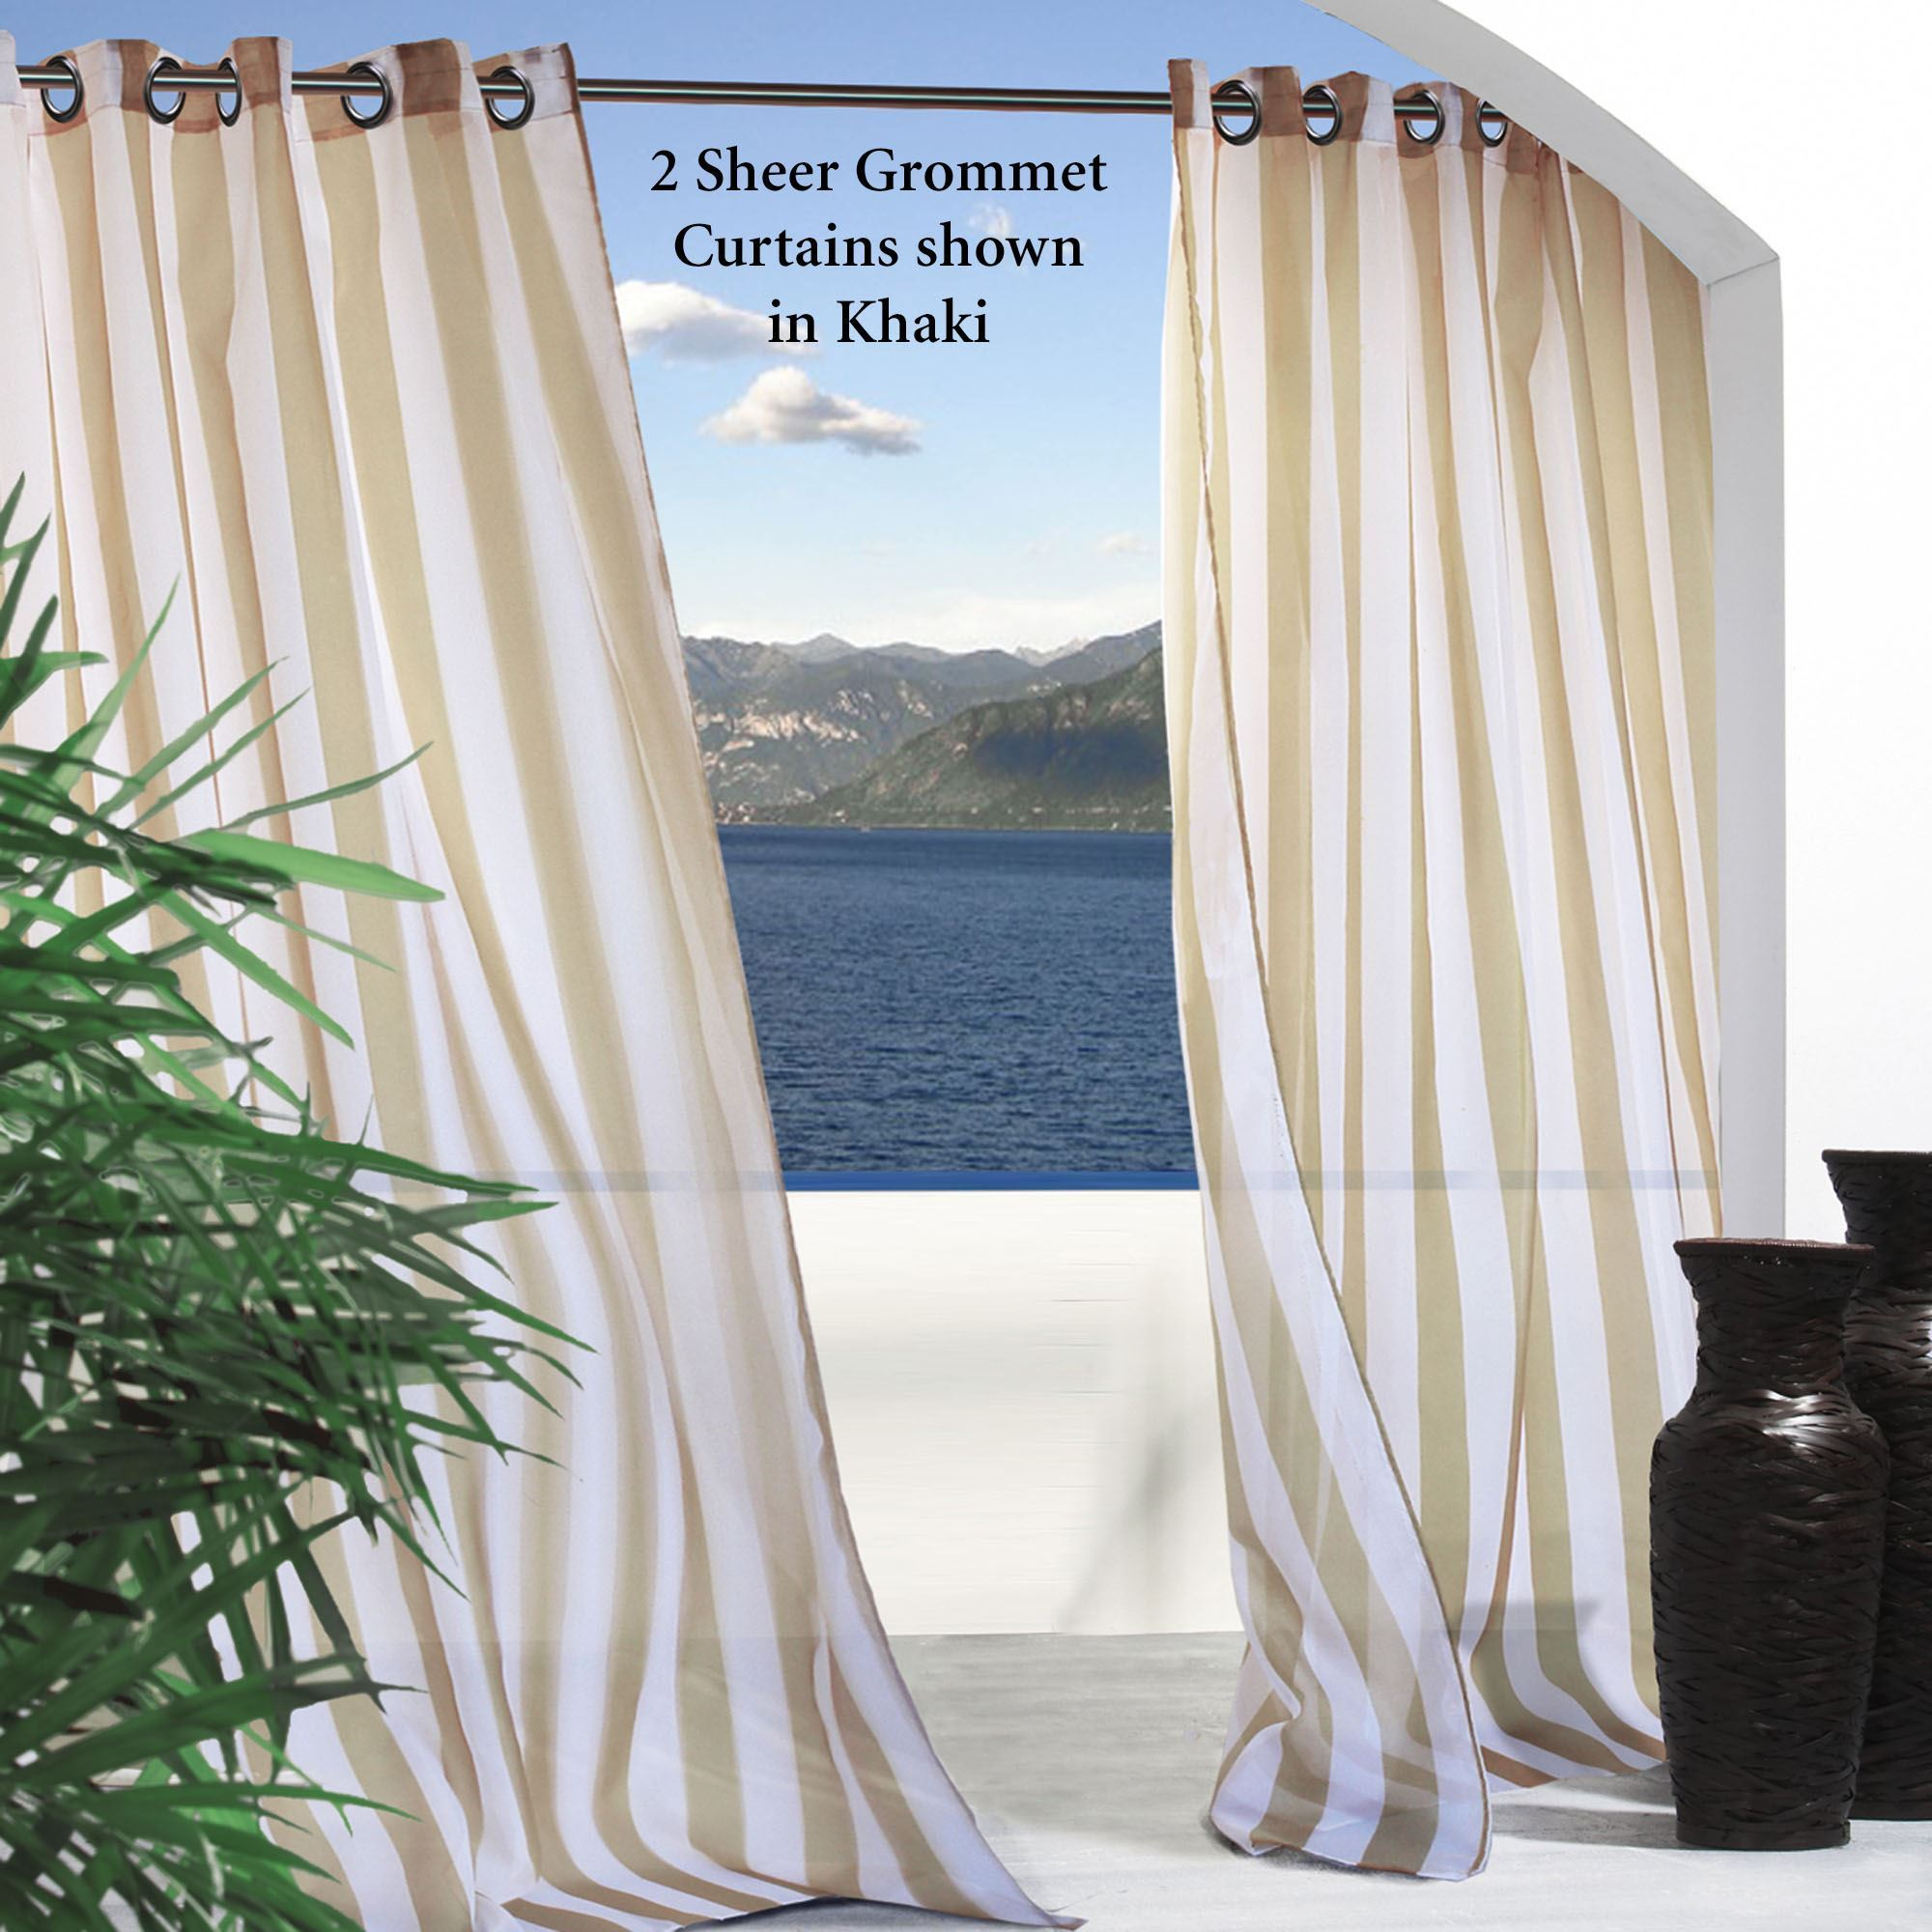 styles gardens stripe sasg escape shower and striped curtains pics fascinating curtain marvelous of outdoor image concept gazebo panels spaces grommet with